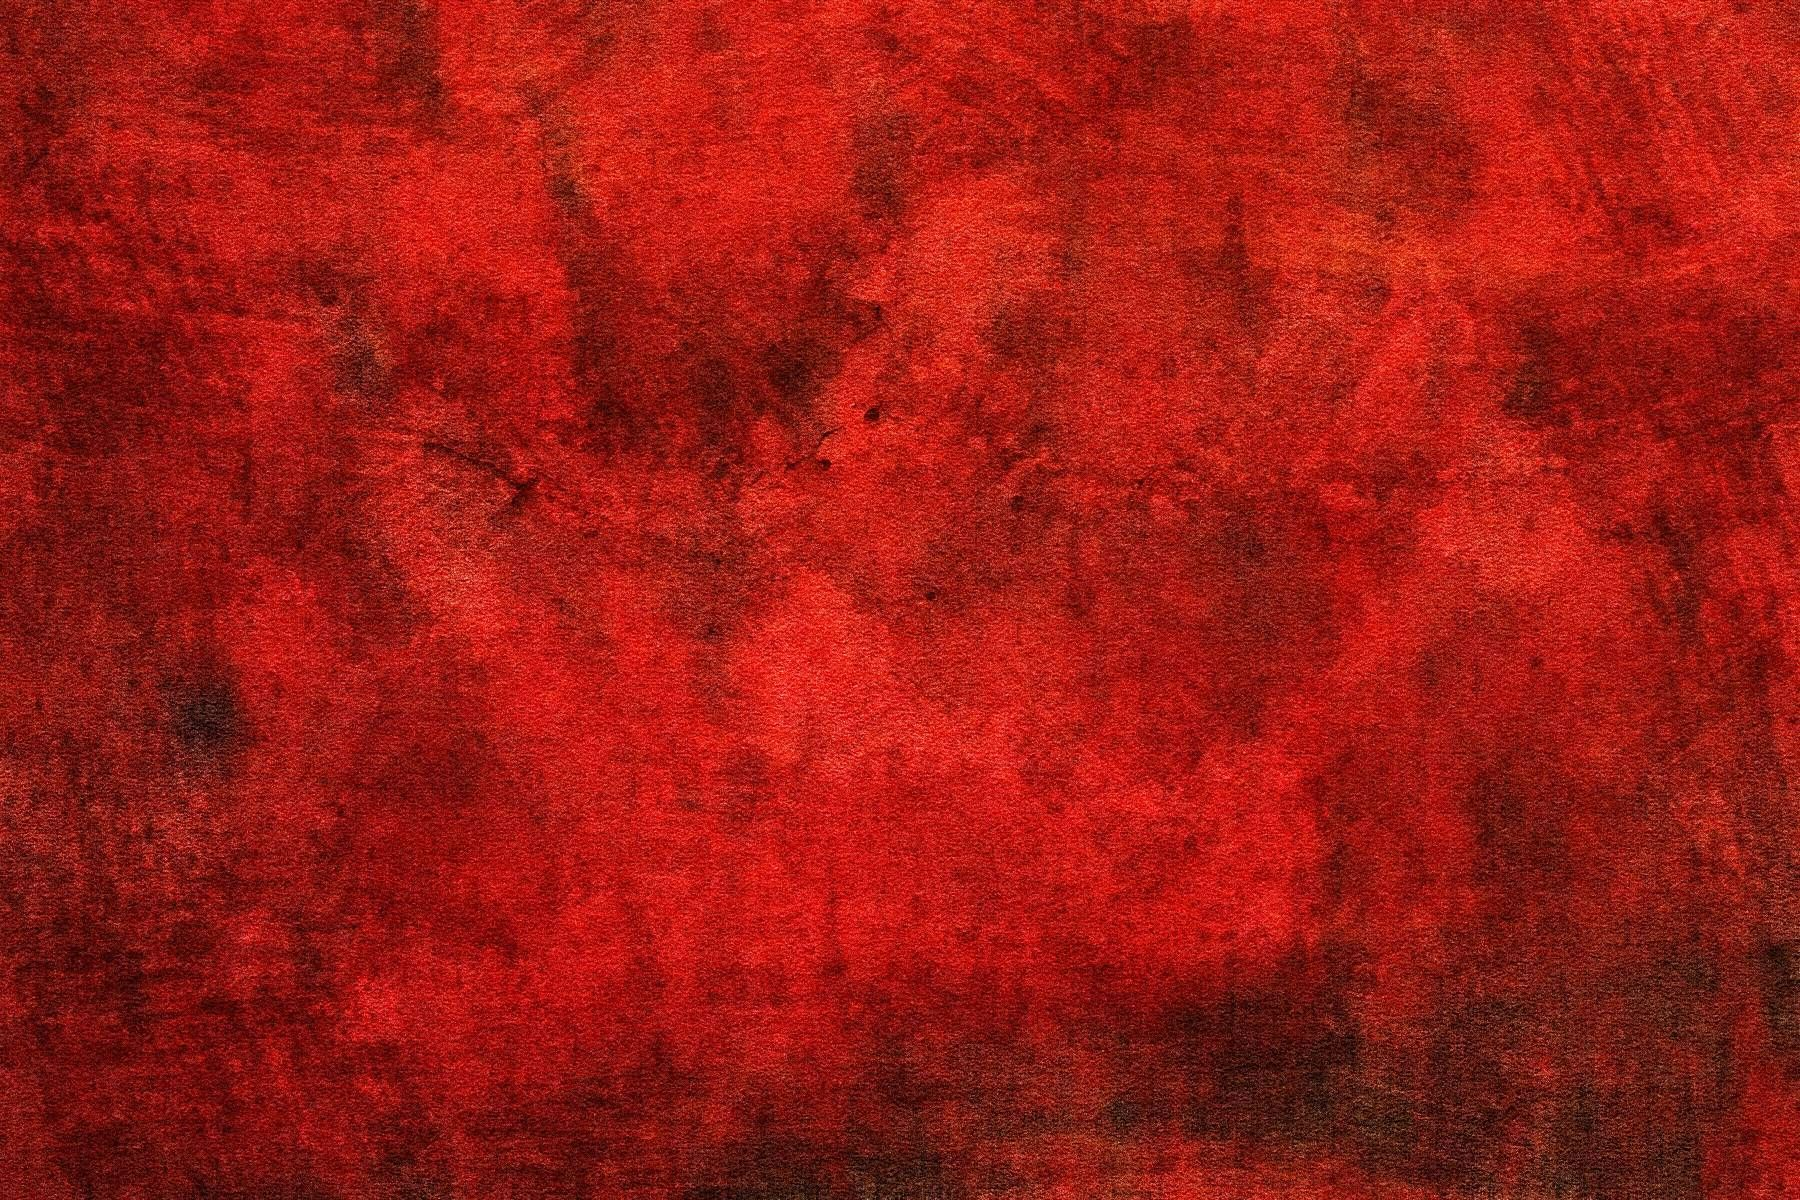 Red Texture HD Wallpapers - Top Free Red Texture HD Backgrounds -  WallpaperAccess